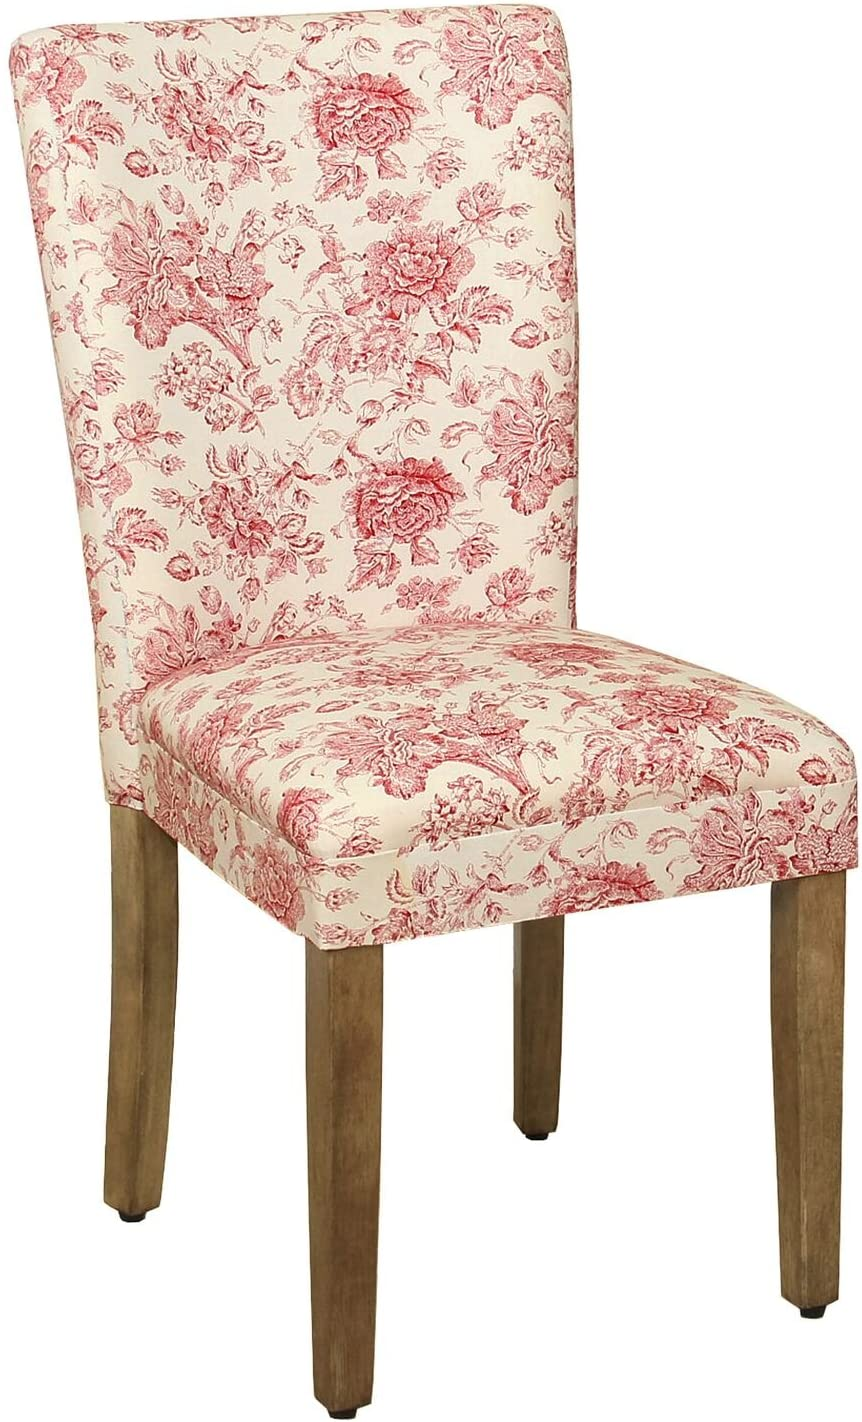 HomePop Parsons Classic Upholstered Accent Dining Chair, Single Pack, Red Toile